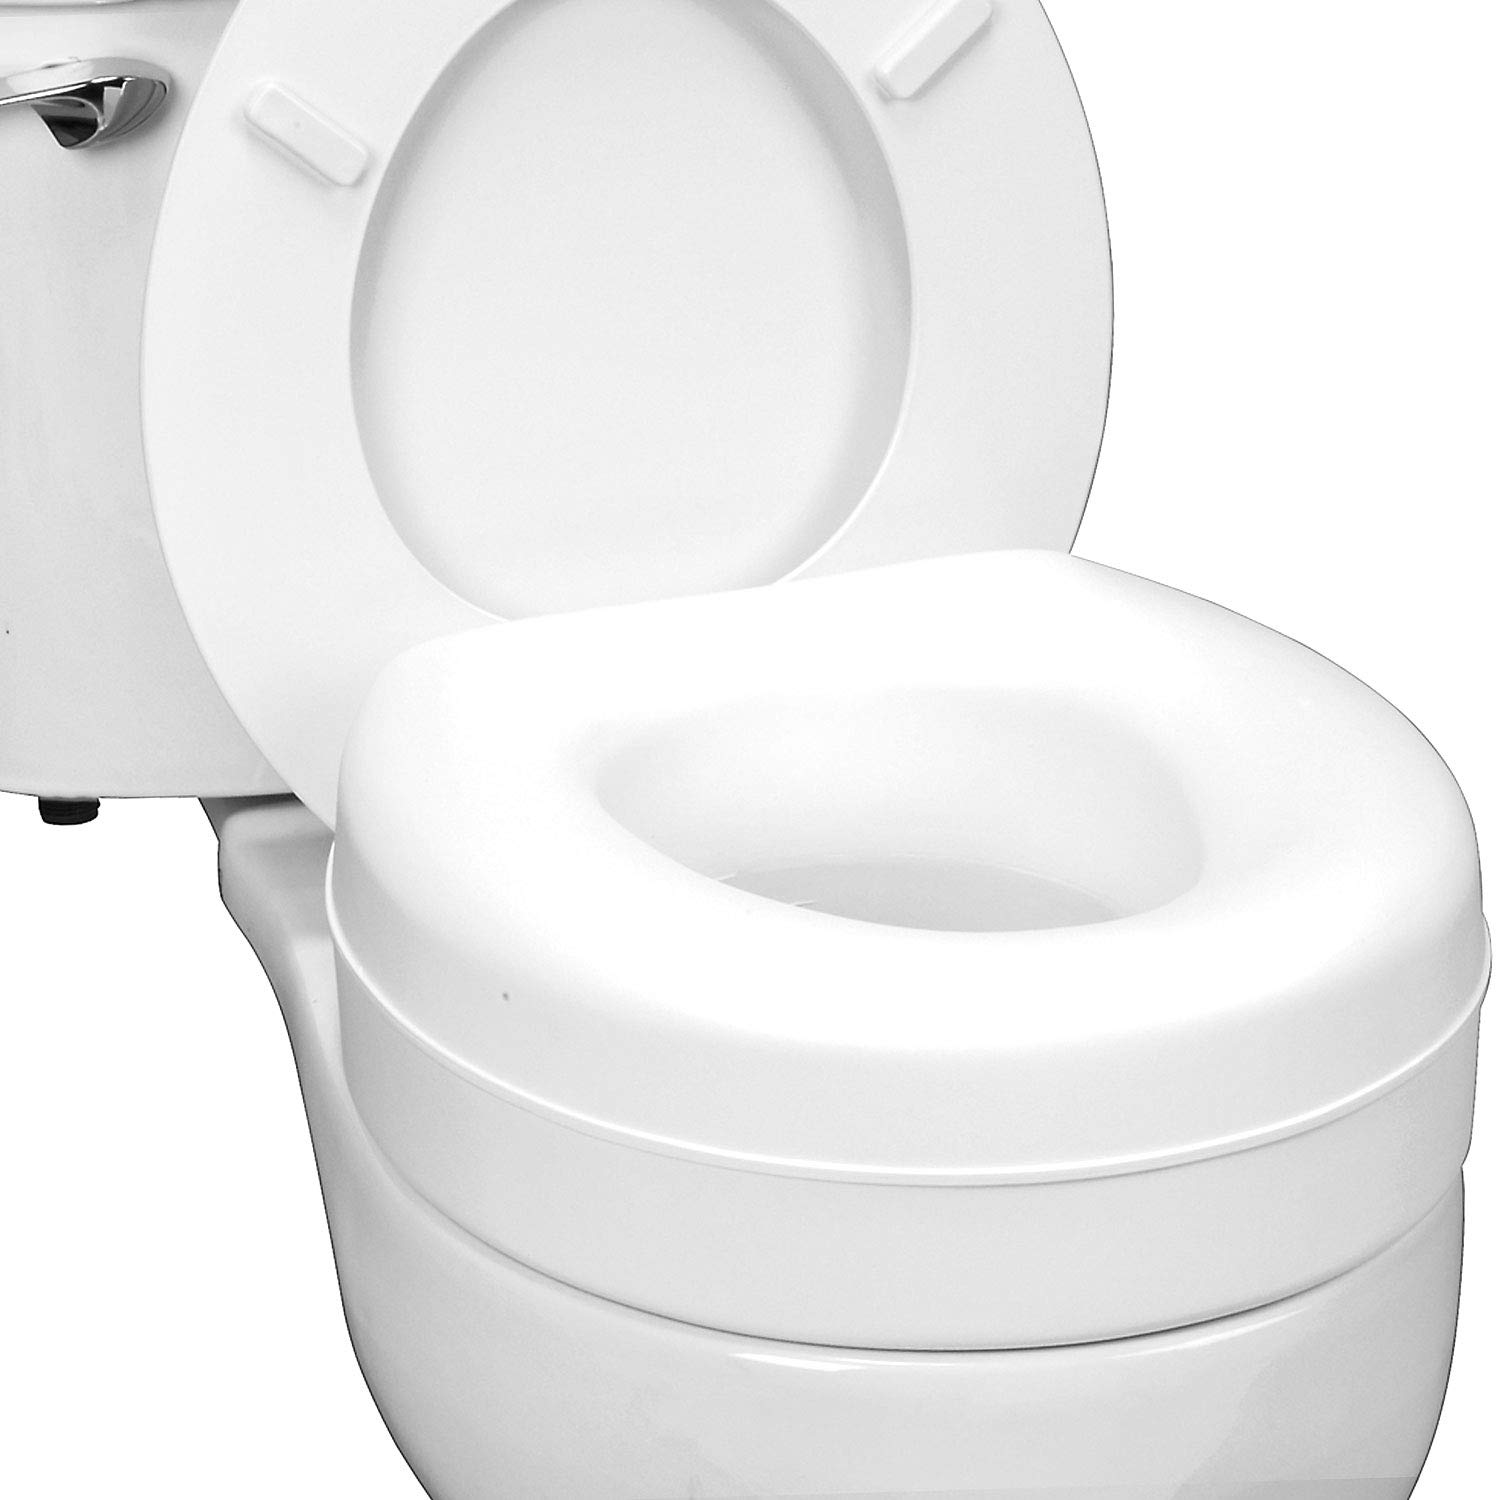 Fabulous Healthsmart Portable Elevated Raised Toilet Seat Riser That Fits Round And Elongated Seats White Inzonedesignstudio Interior Chair Design Inzonedesignstudiocom